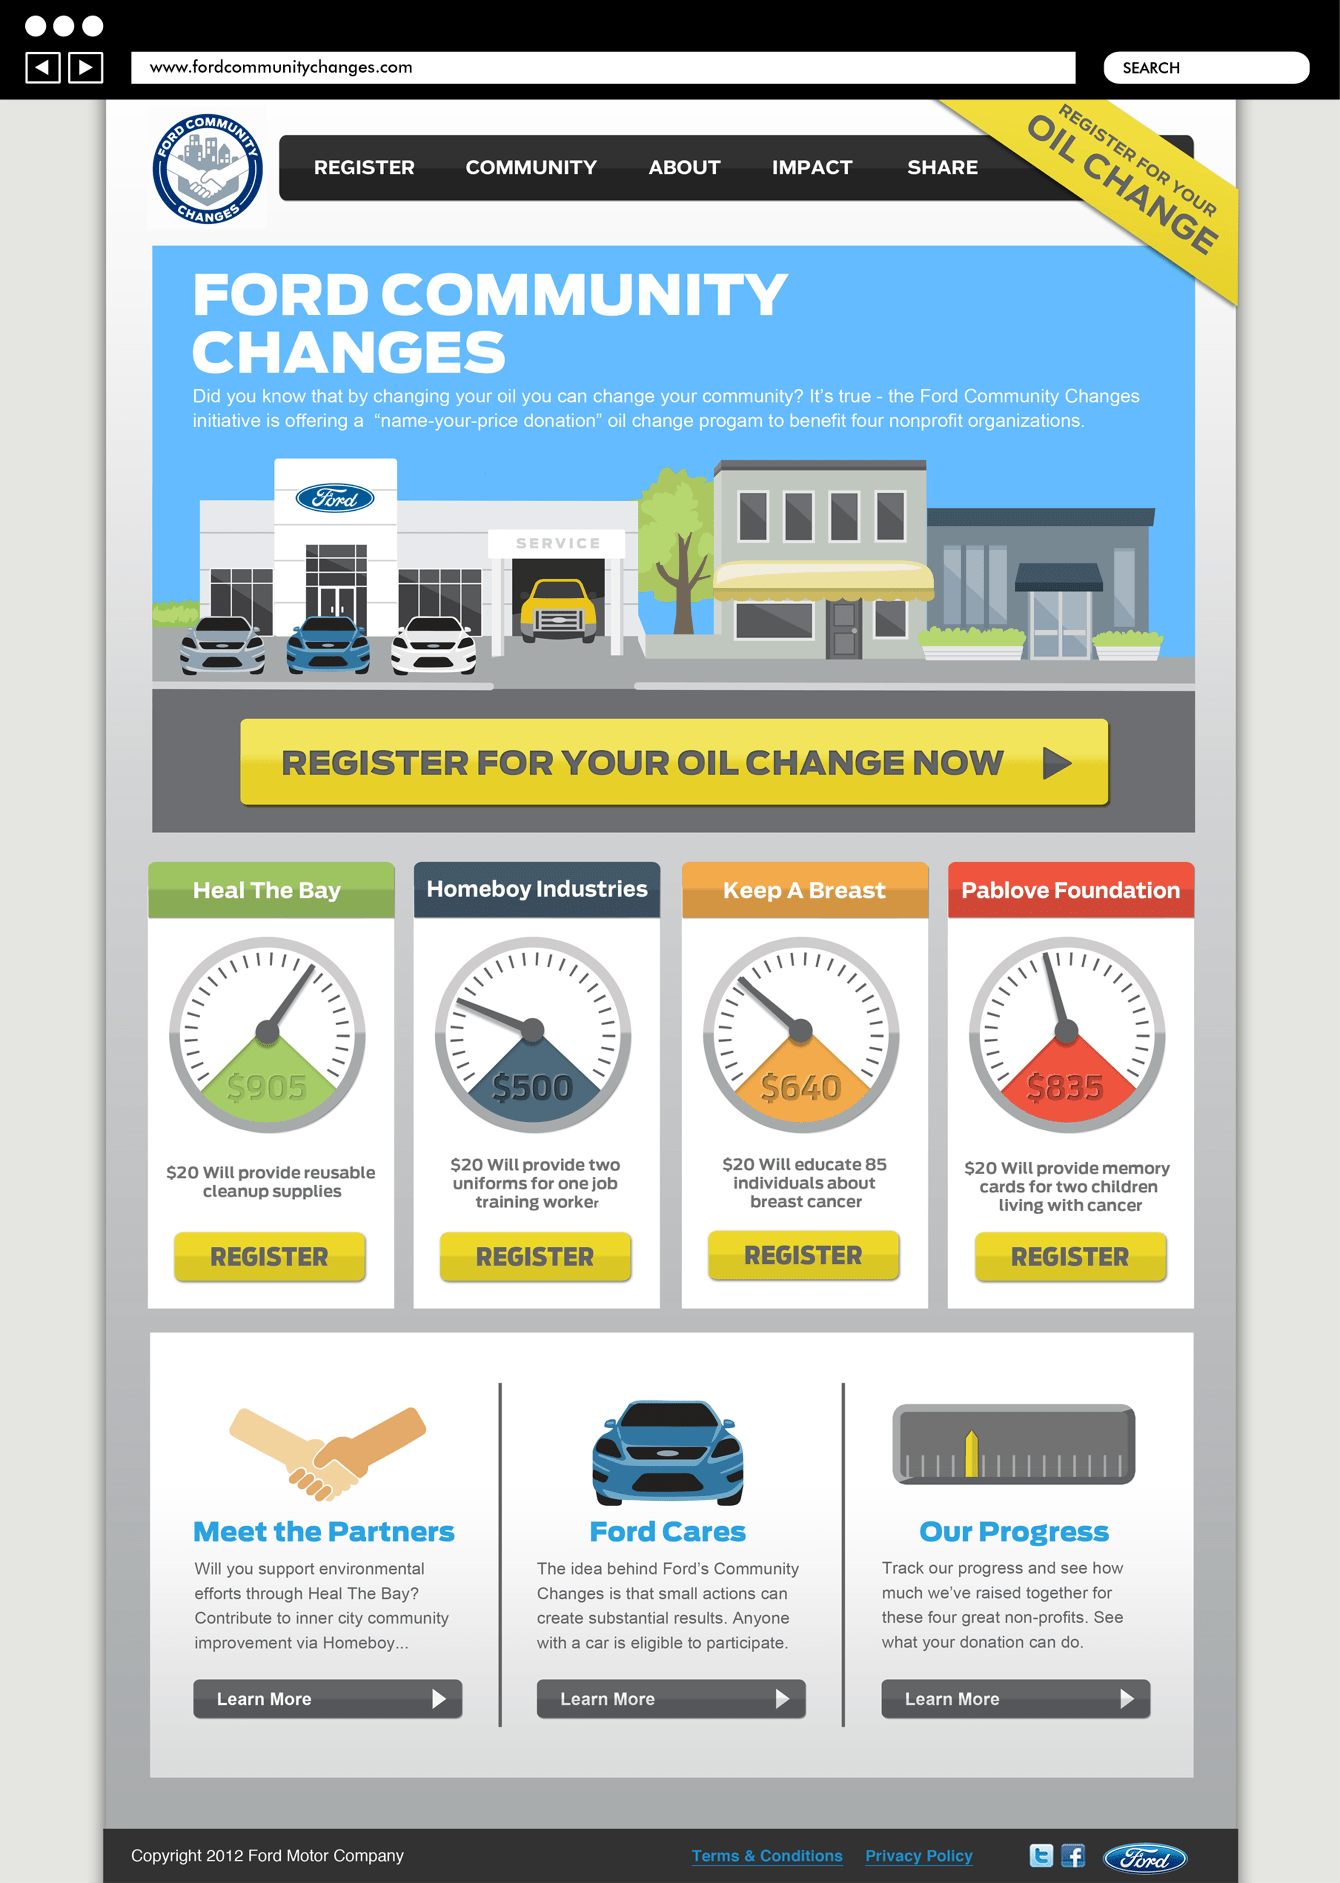 Ford Community Changes